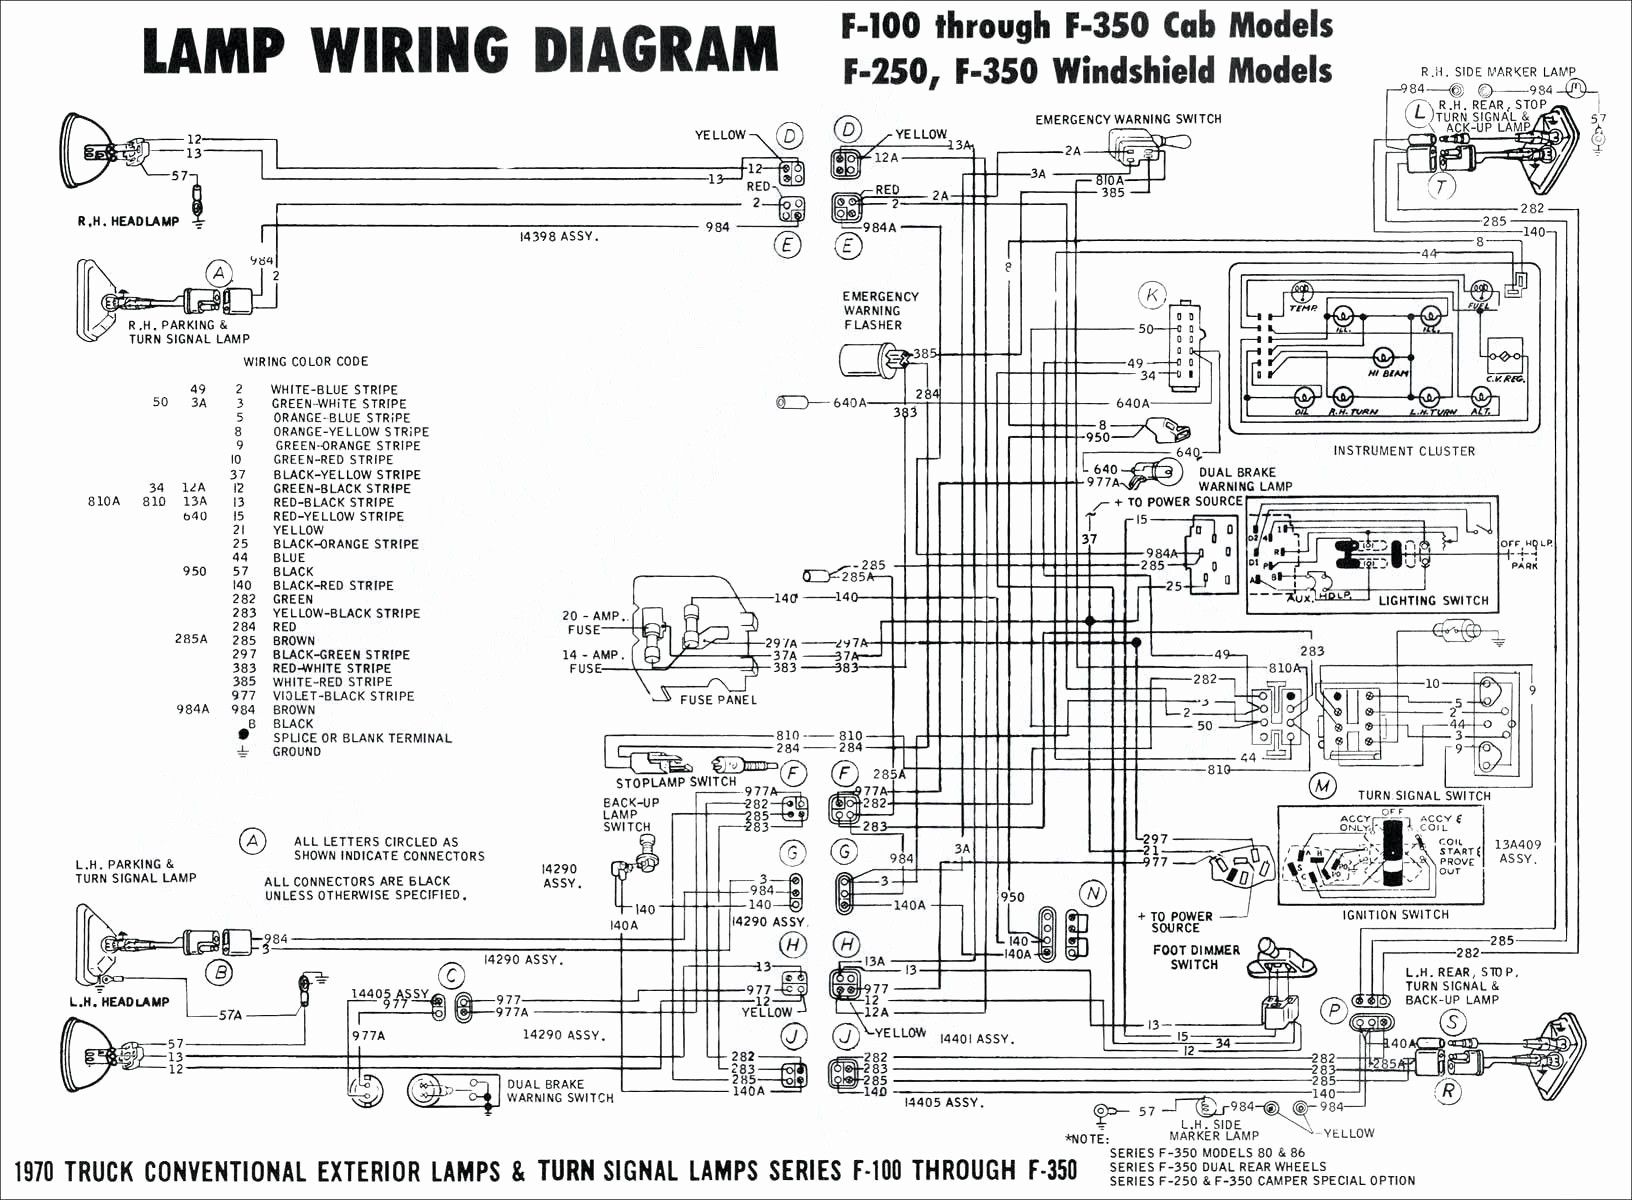 2003 Cadillac Cts Engine Diagram 2004 Cadillac Escalade Trailer Wiring Worksheet and Wiring Diagram • Of 2003 Cadillac Cts Engine Diagram